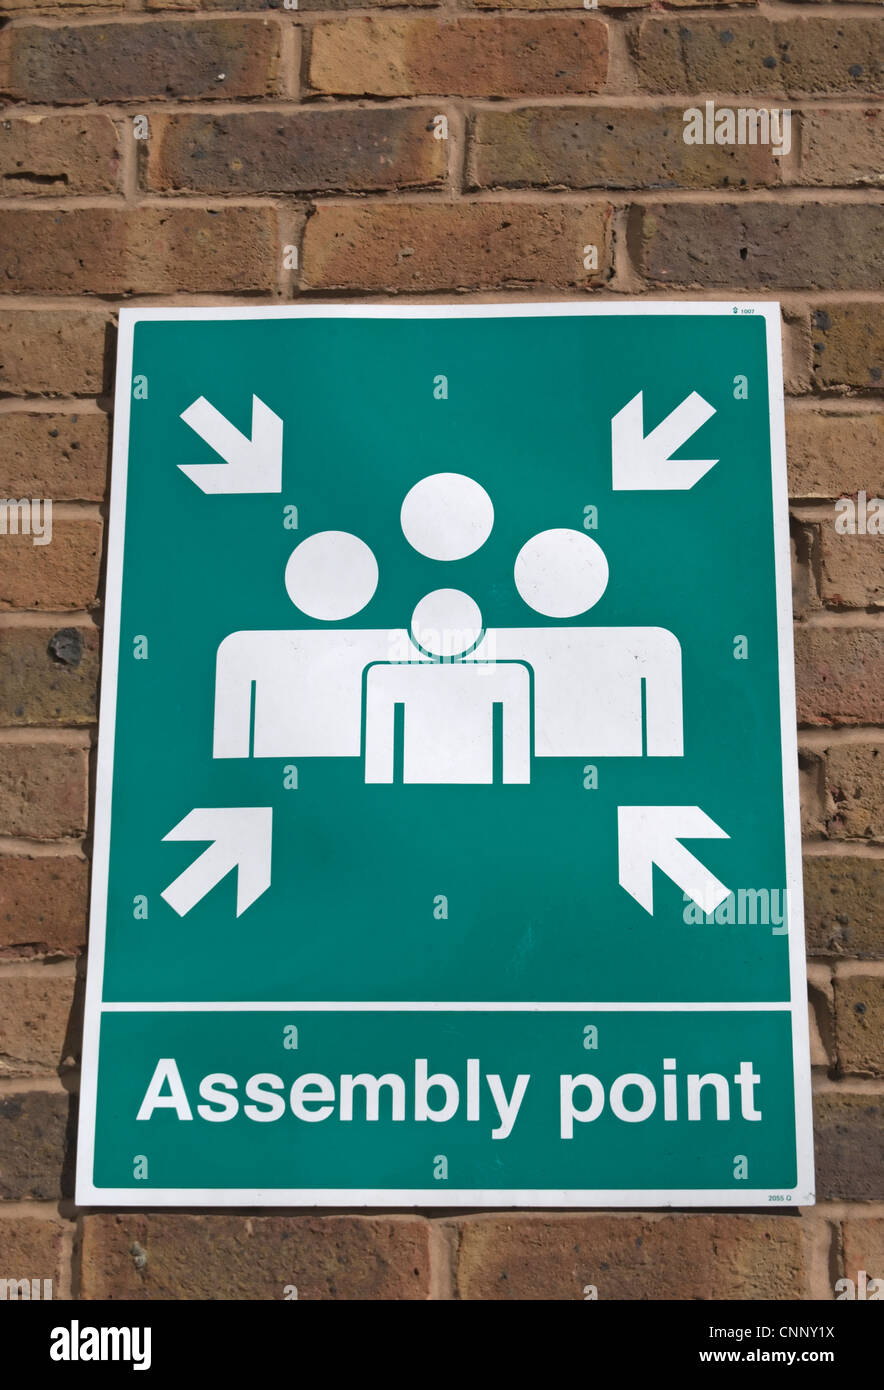 assembly point sign on a building in kingston, surrey, england - Stock Image